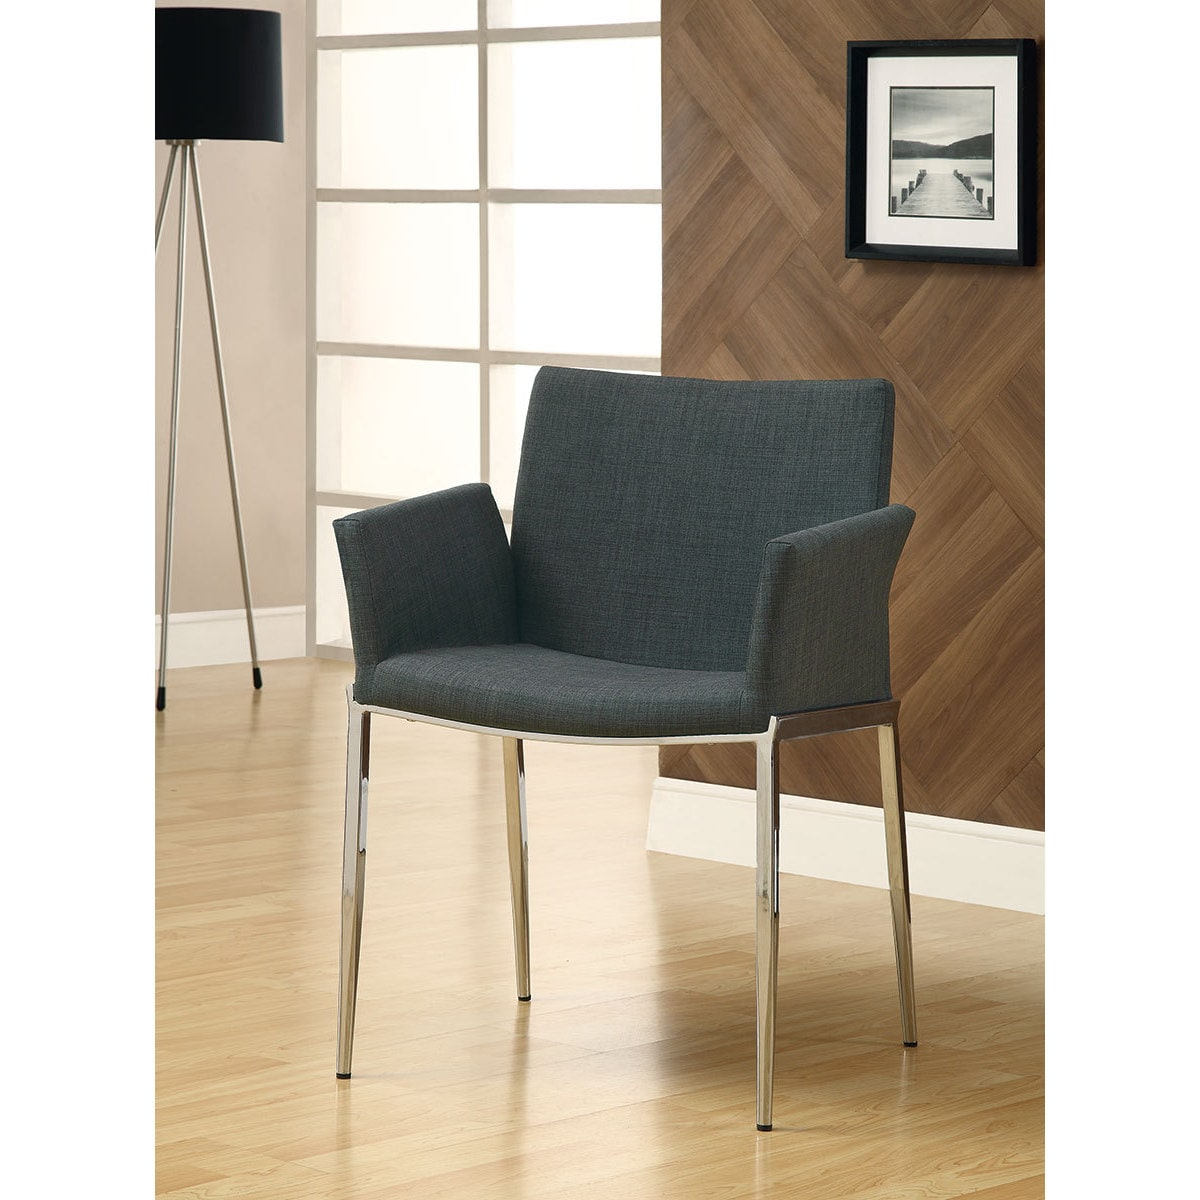 Coaster Furniture Charcoal (Grey) Dining Chair (Chair) (F...